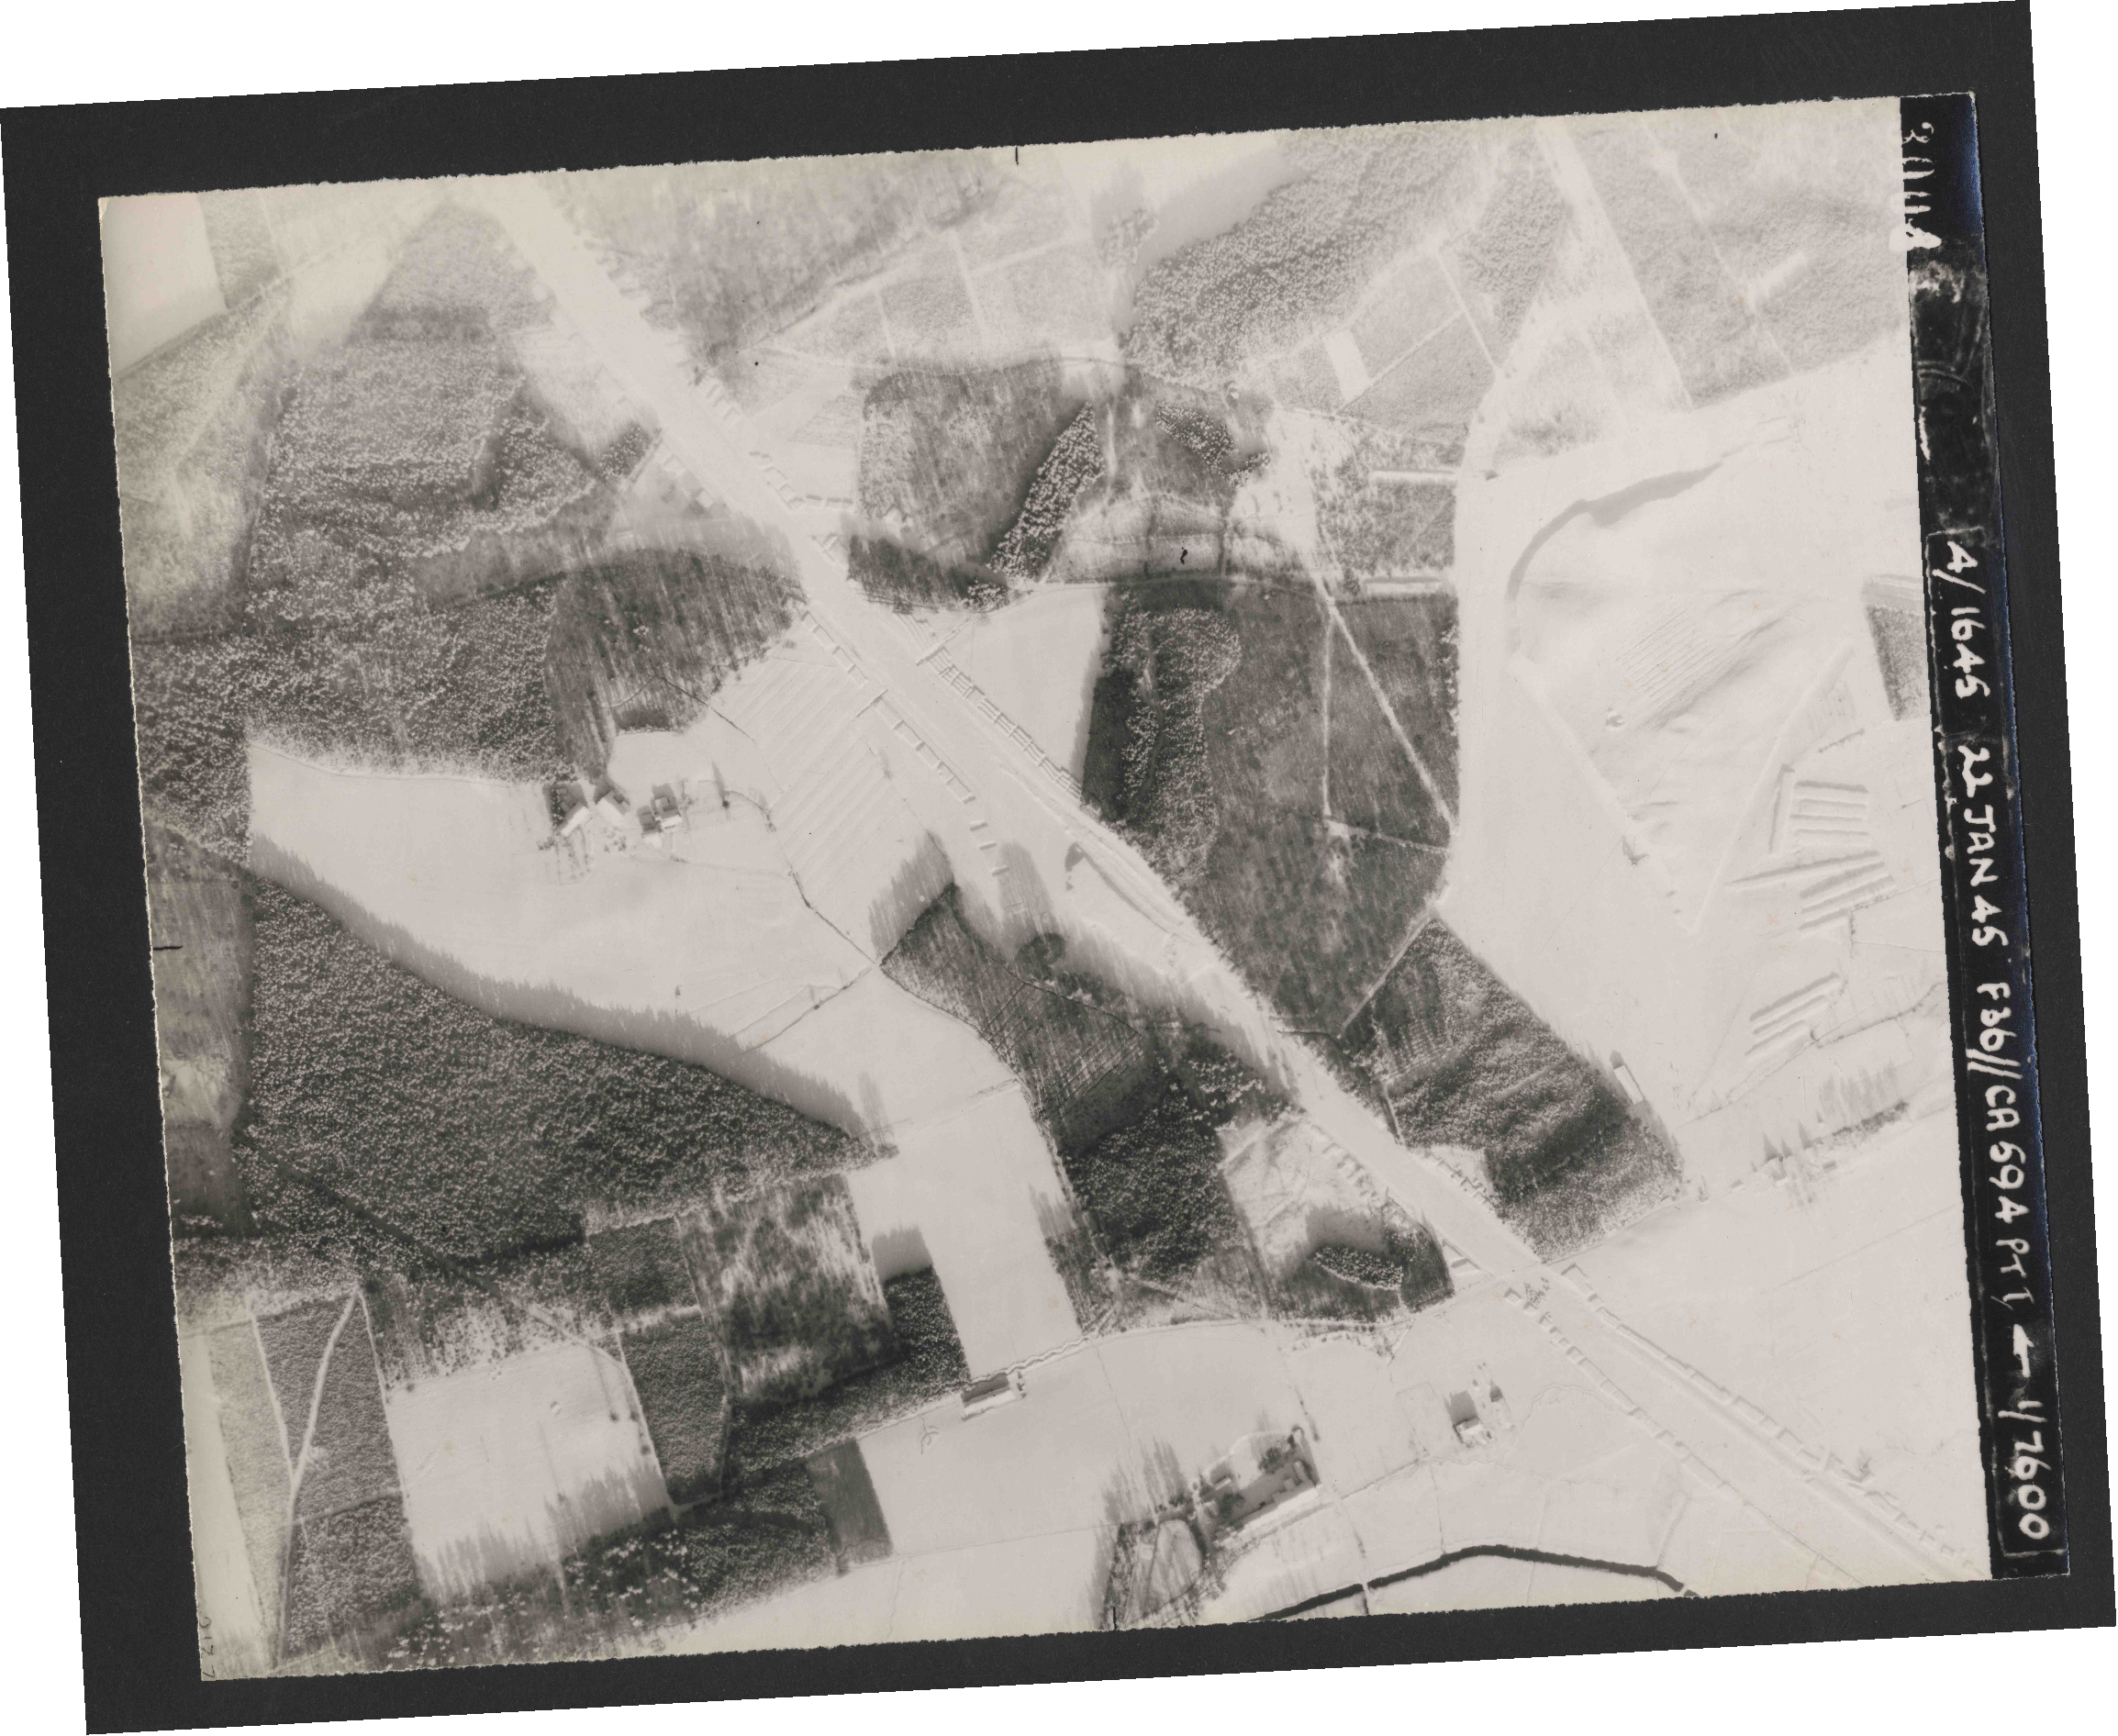 Collection RAF aerial photos 1940-1945 - flight 319, run 01, photo 3004